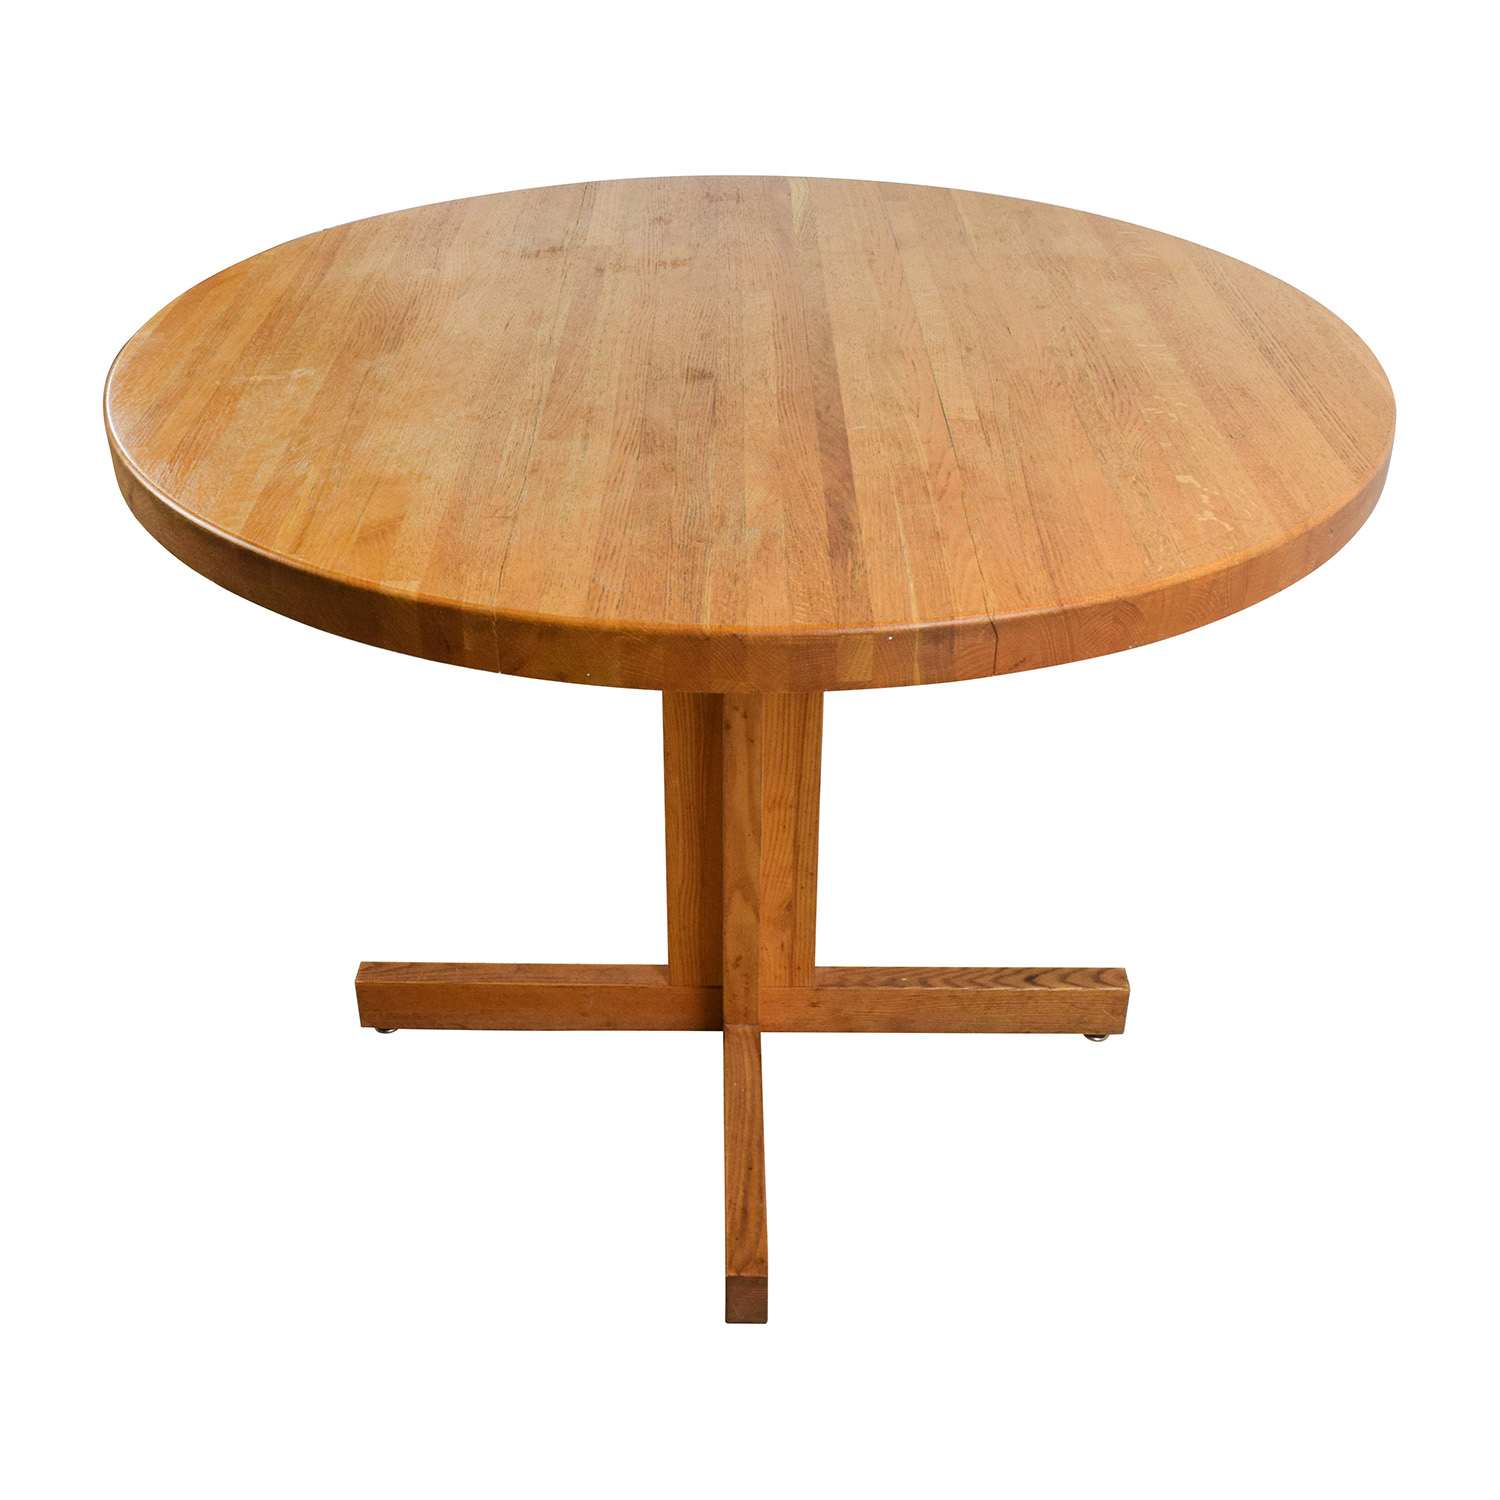 Solid Oak Round Table dimensions